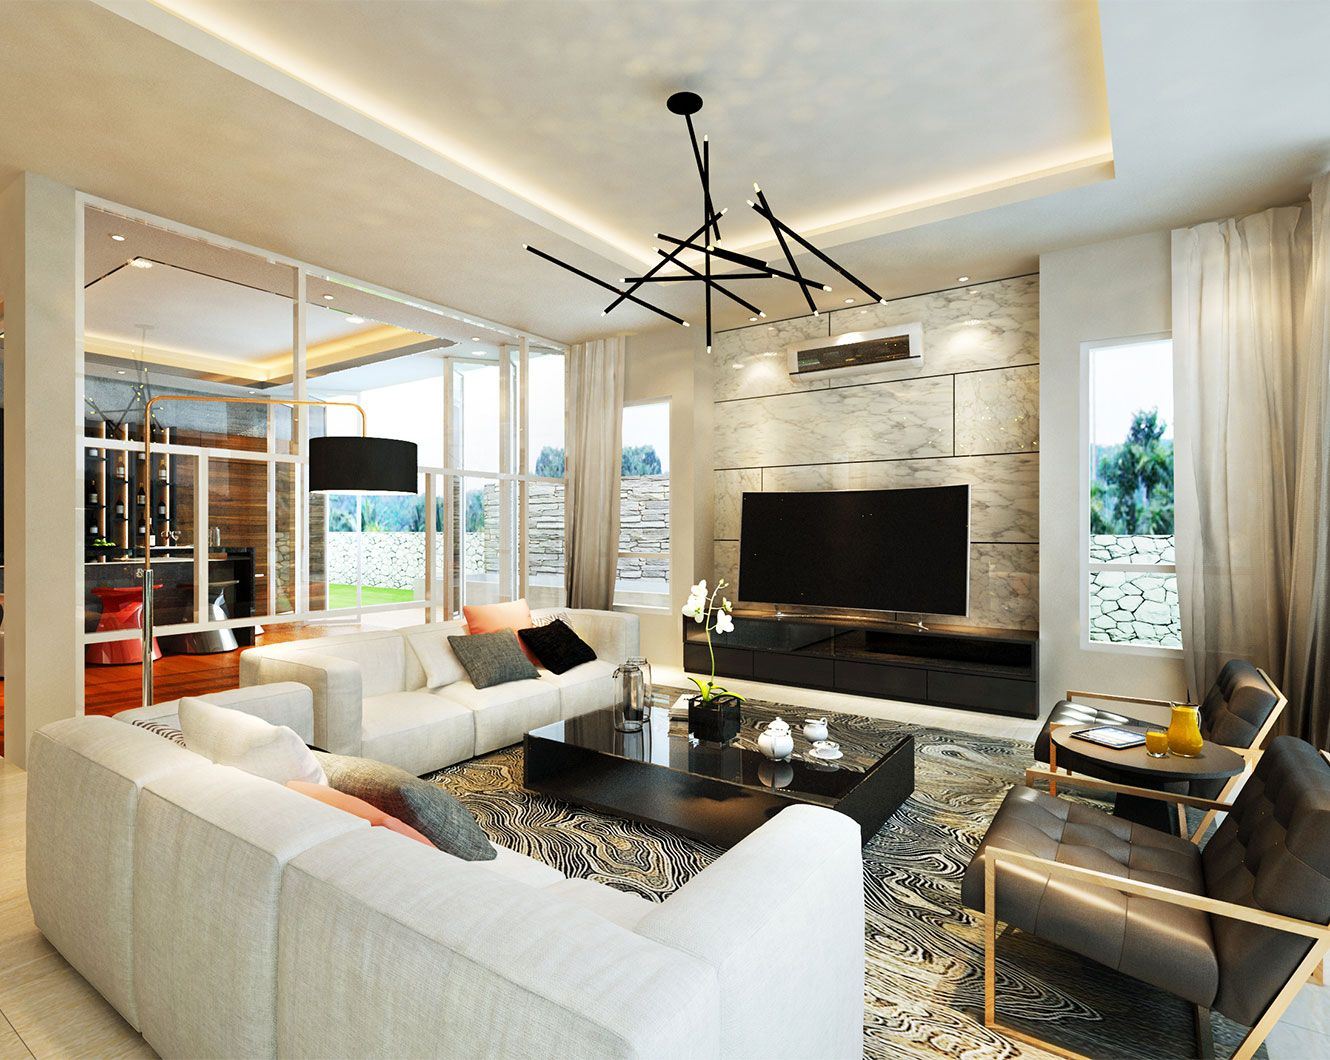 Modern Classical Living Room Design In Luxury Bungalow Malaysia Hall And Living Room Luxury Interior Design Classical Living Room Malaysia living room ideas